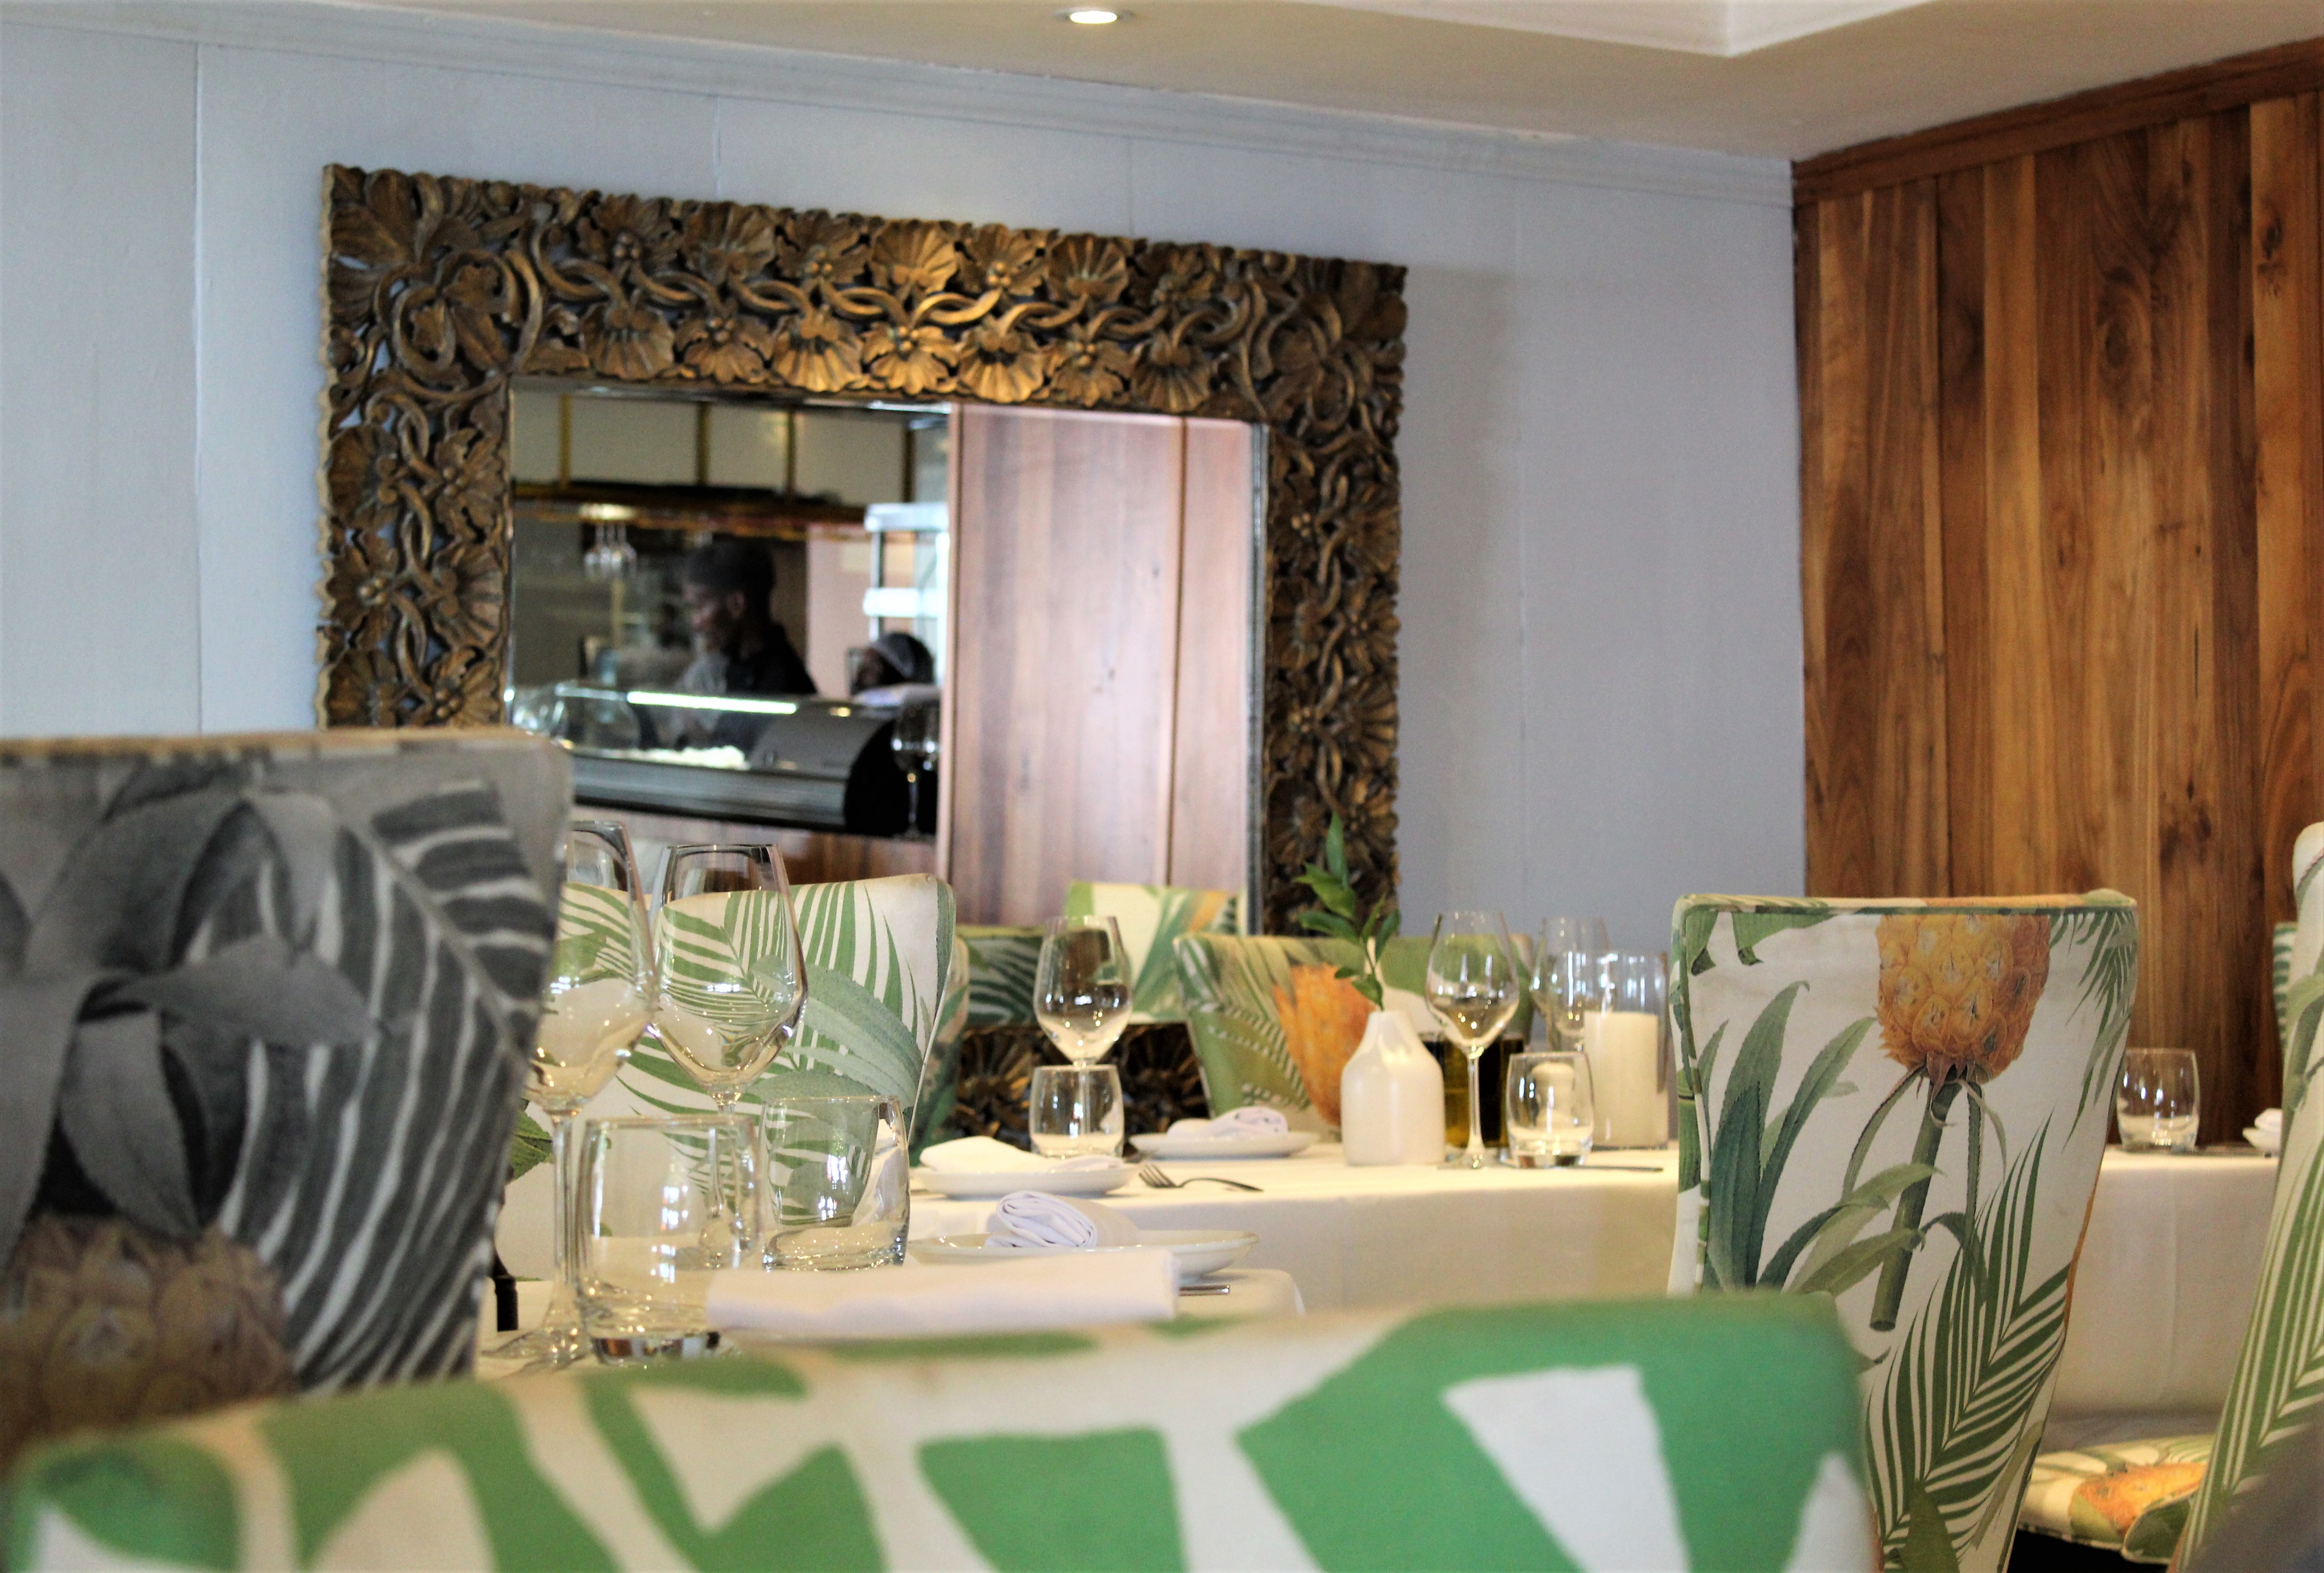 sevruga restaurant at V&A waterfront cape town with mirror and interior decor